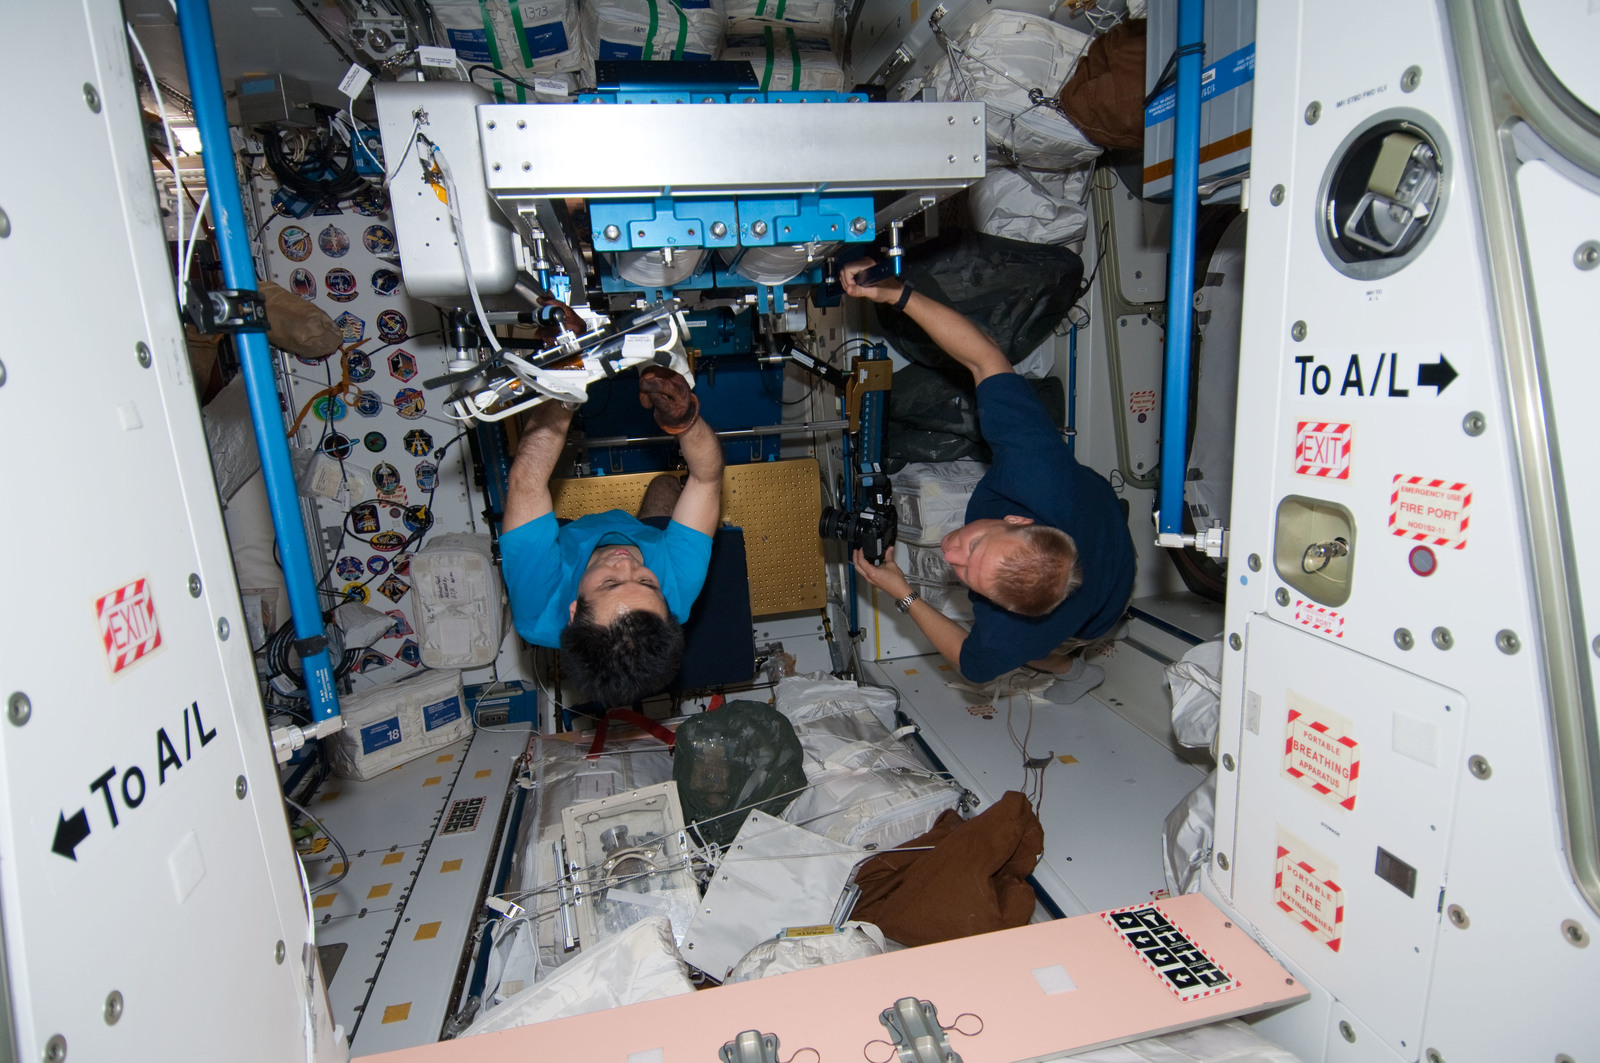 S127E007033 - STS-127 - Wakata stows the ARED in the Node 1 during STS-127 / Expedition 20 Joint Operations